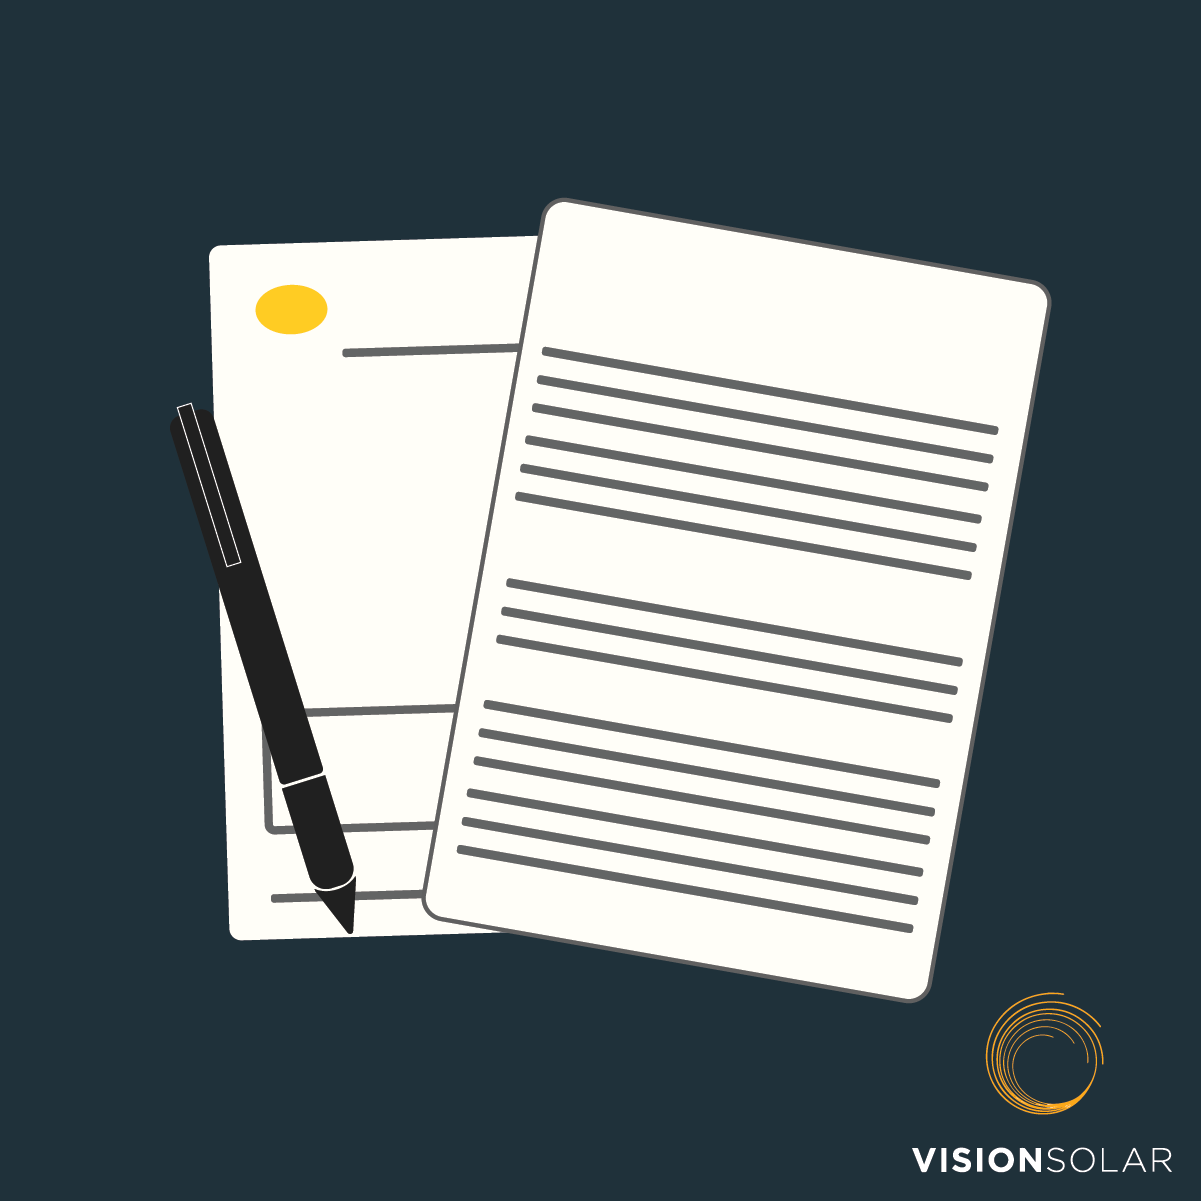 Vision Solar : What Happens When My Solar Lease is Up